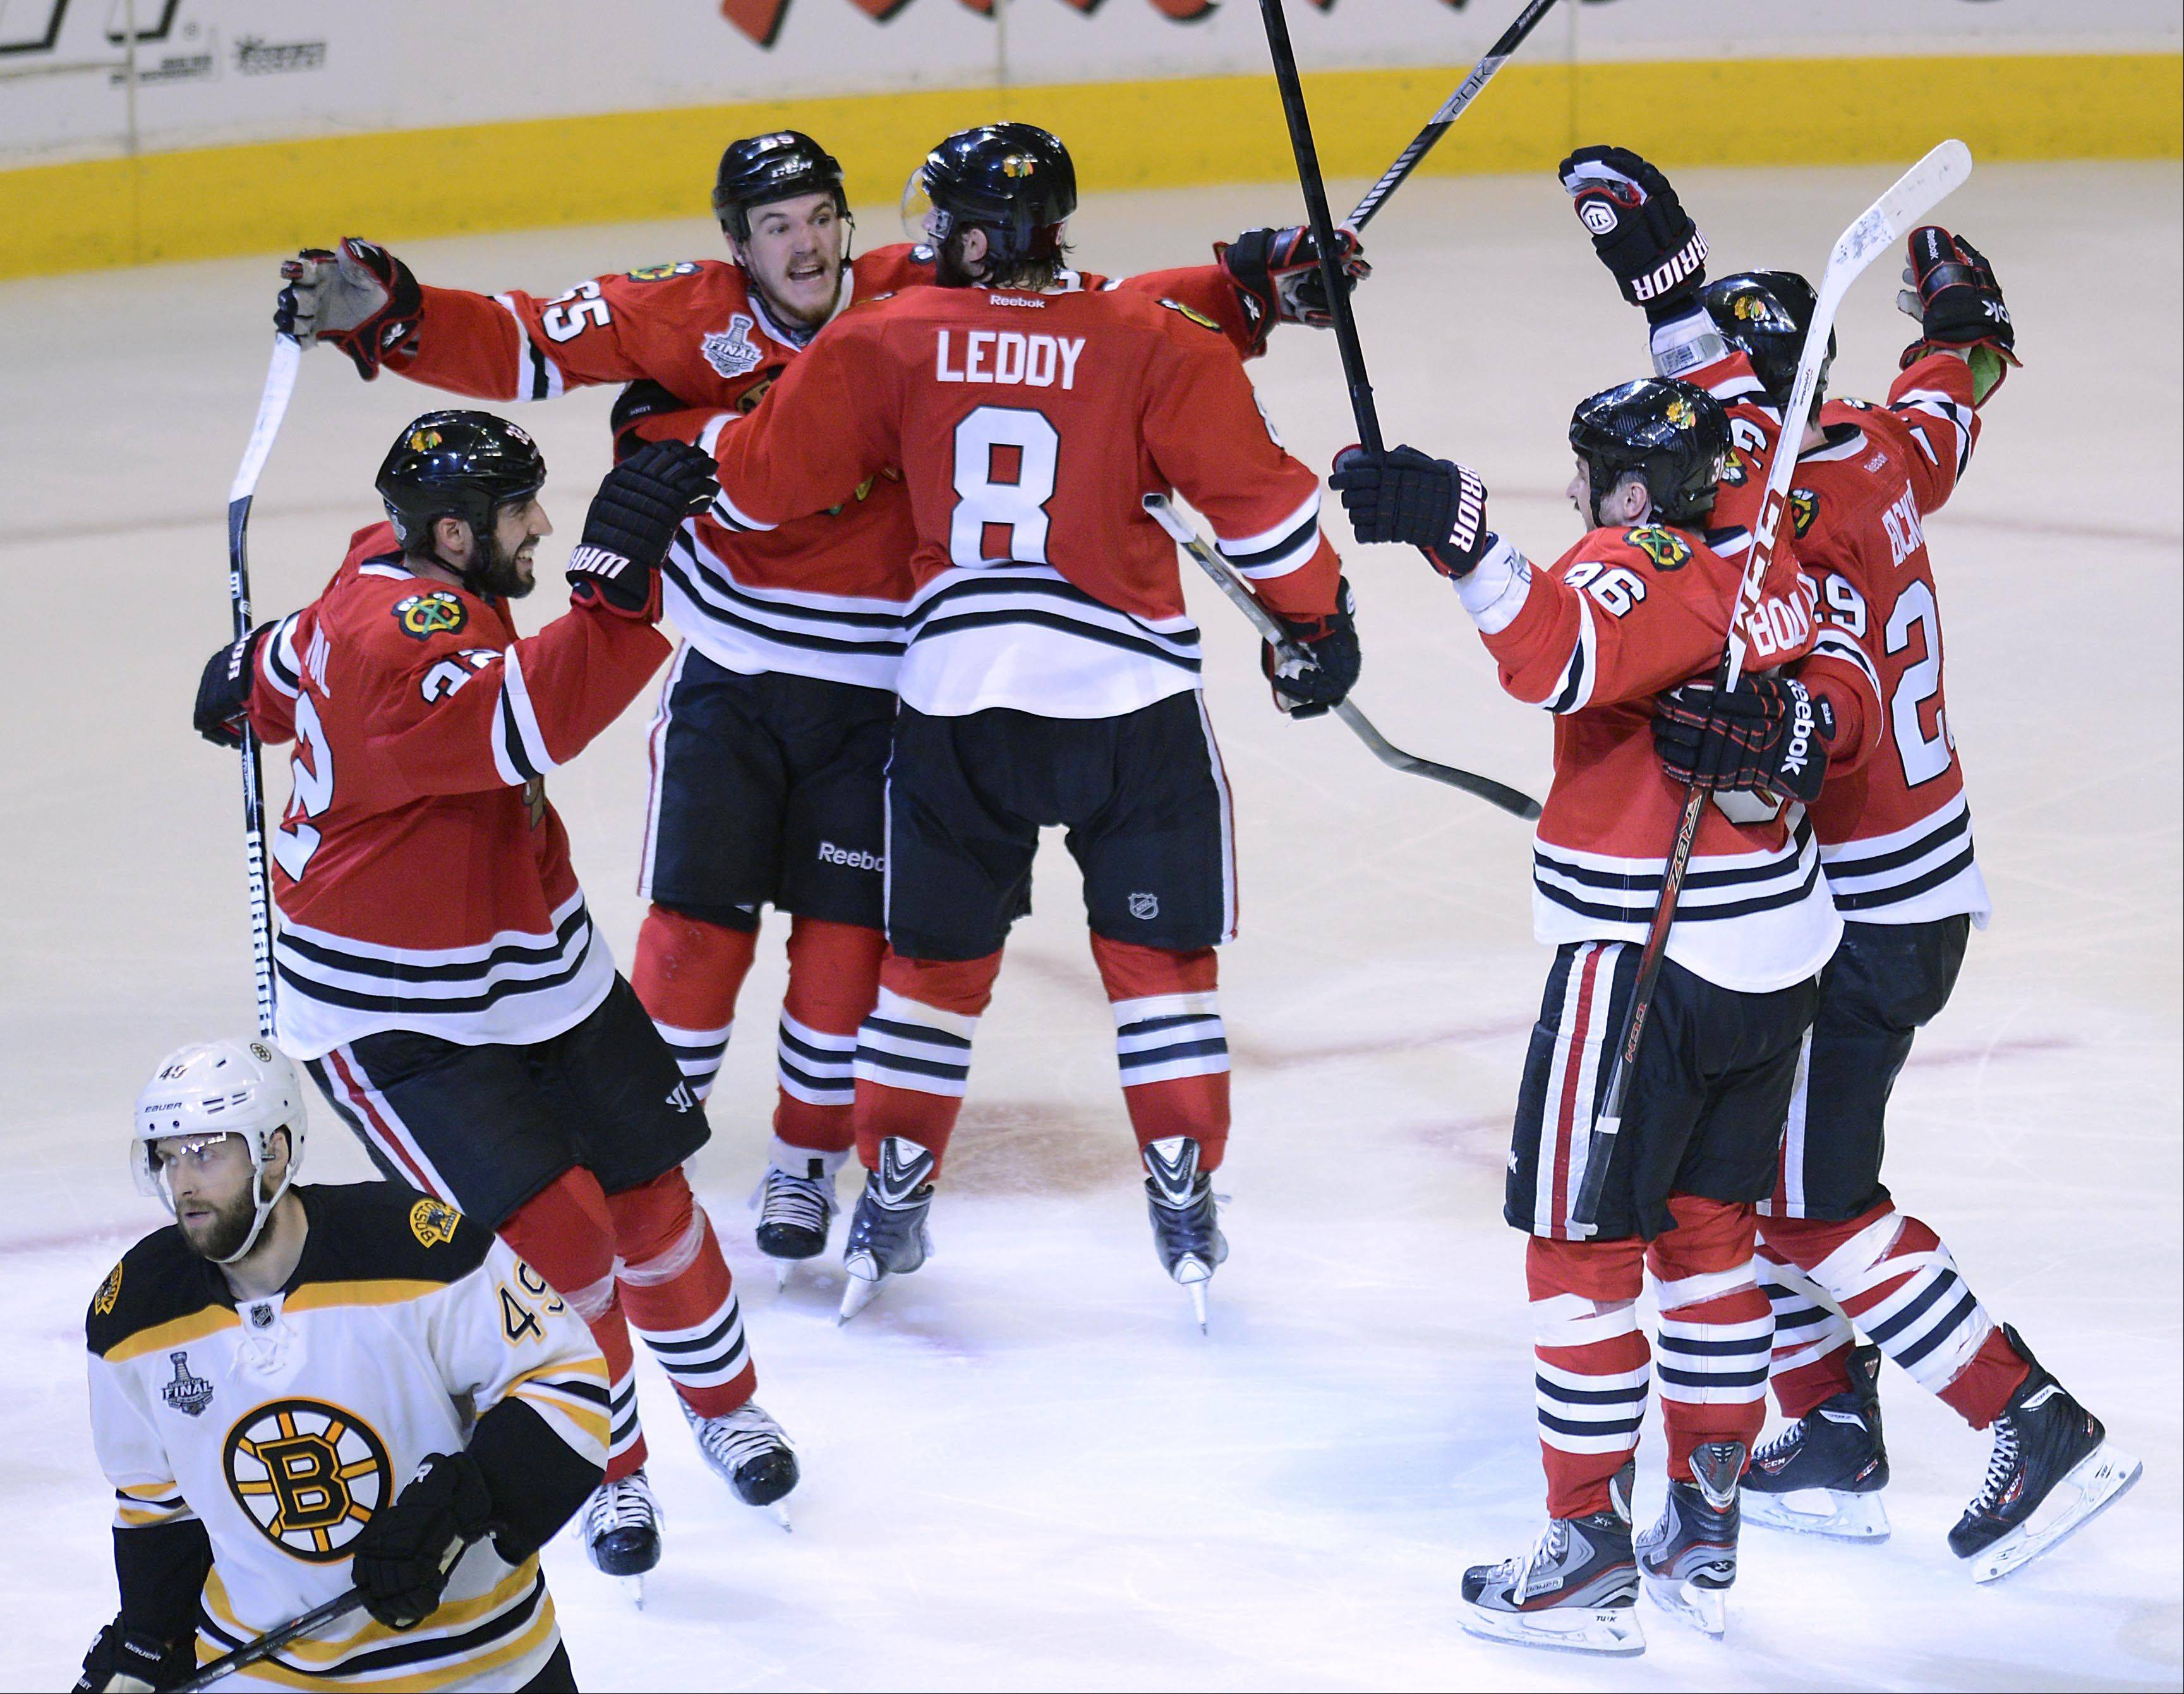 John Starks/jstarks@dailyherald.com Chicago Blackhawks center Andrew Shaw is surrounded by teammates after his game-winning goal in the third overtime against the Boston Bruins during Game 1 of the Stanley Cup Finals Wednesday at the United Center in Chicago.